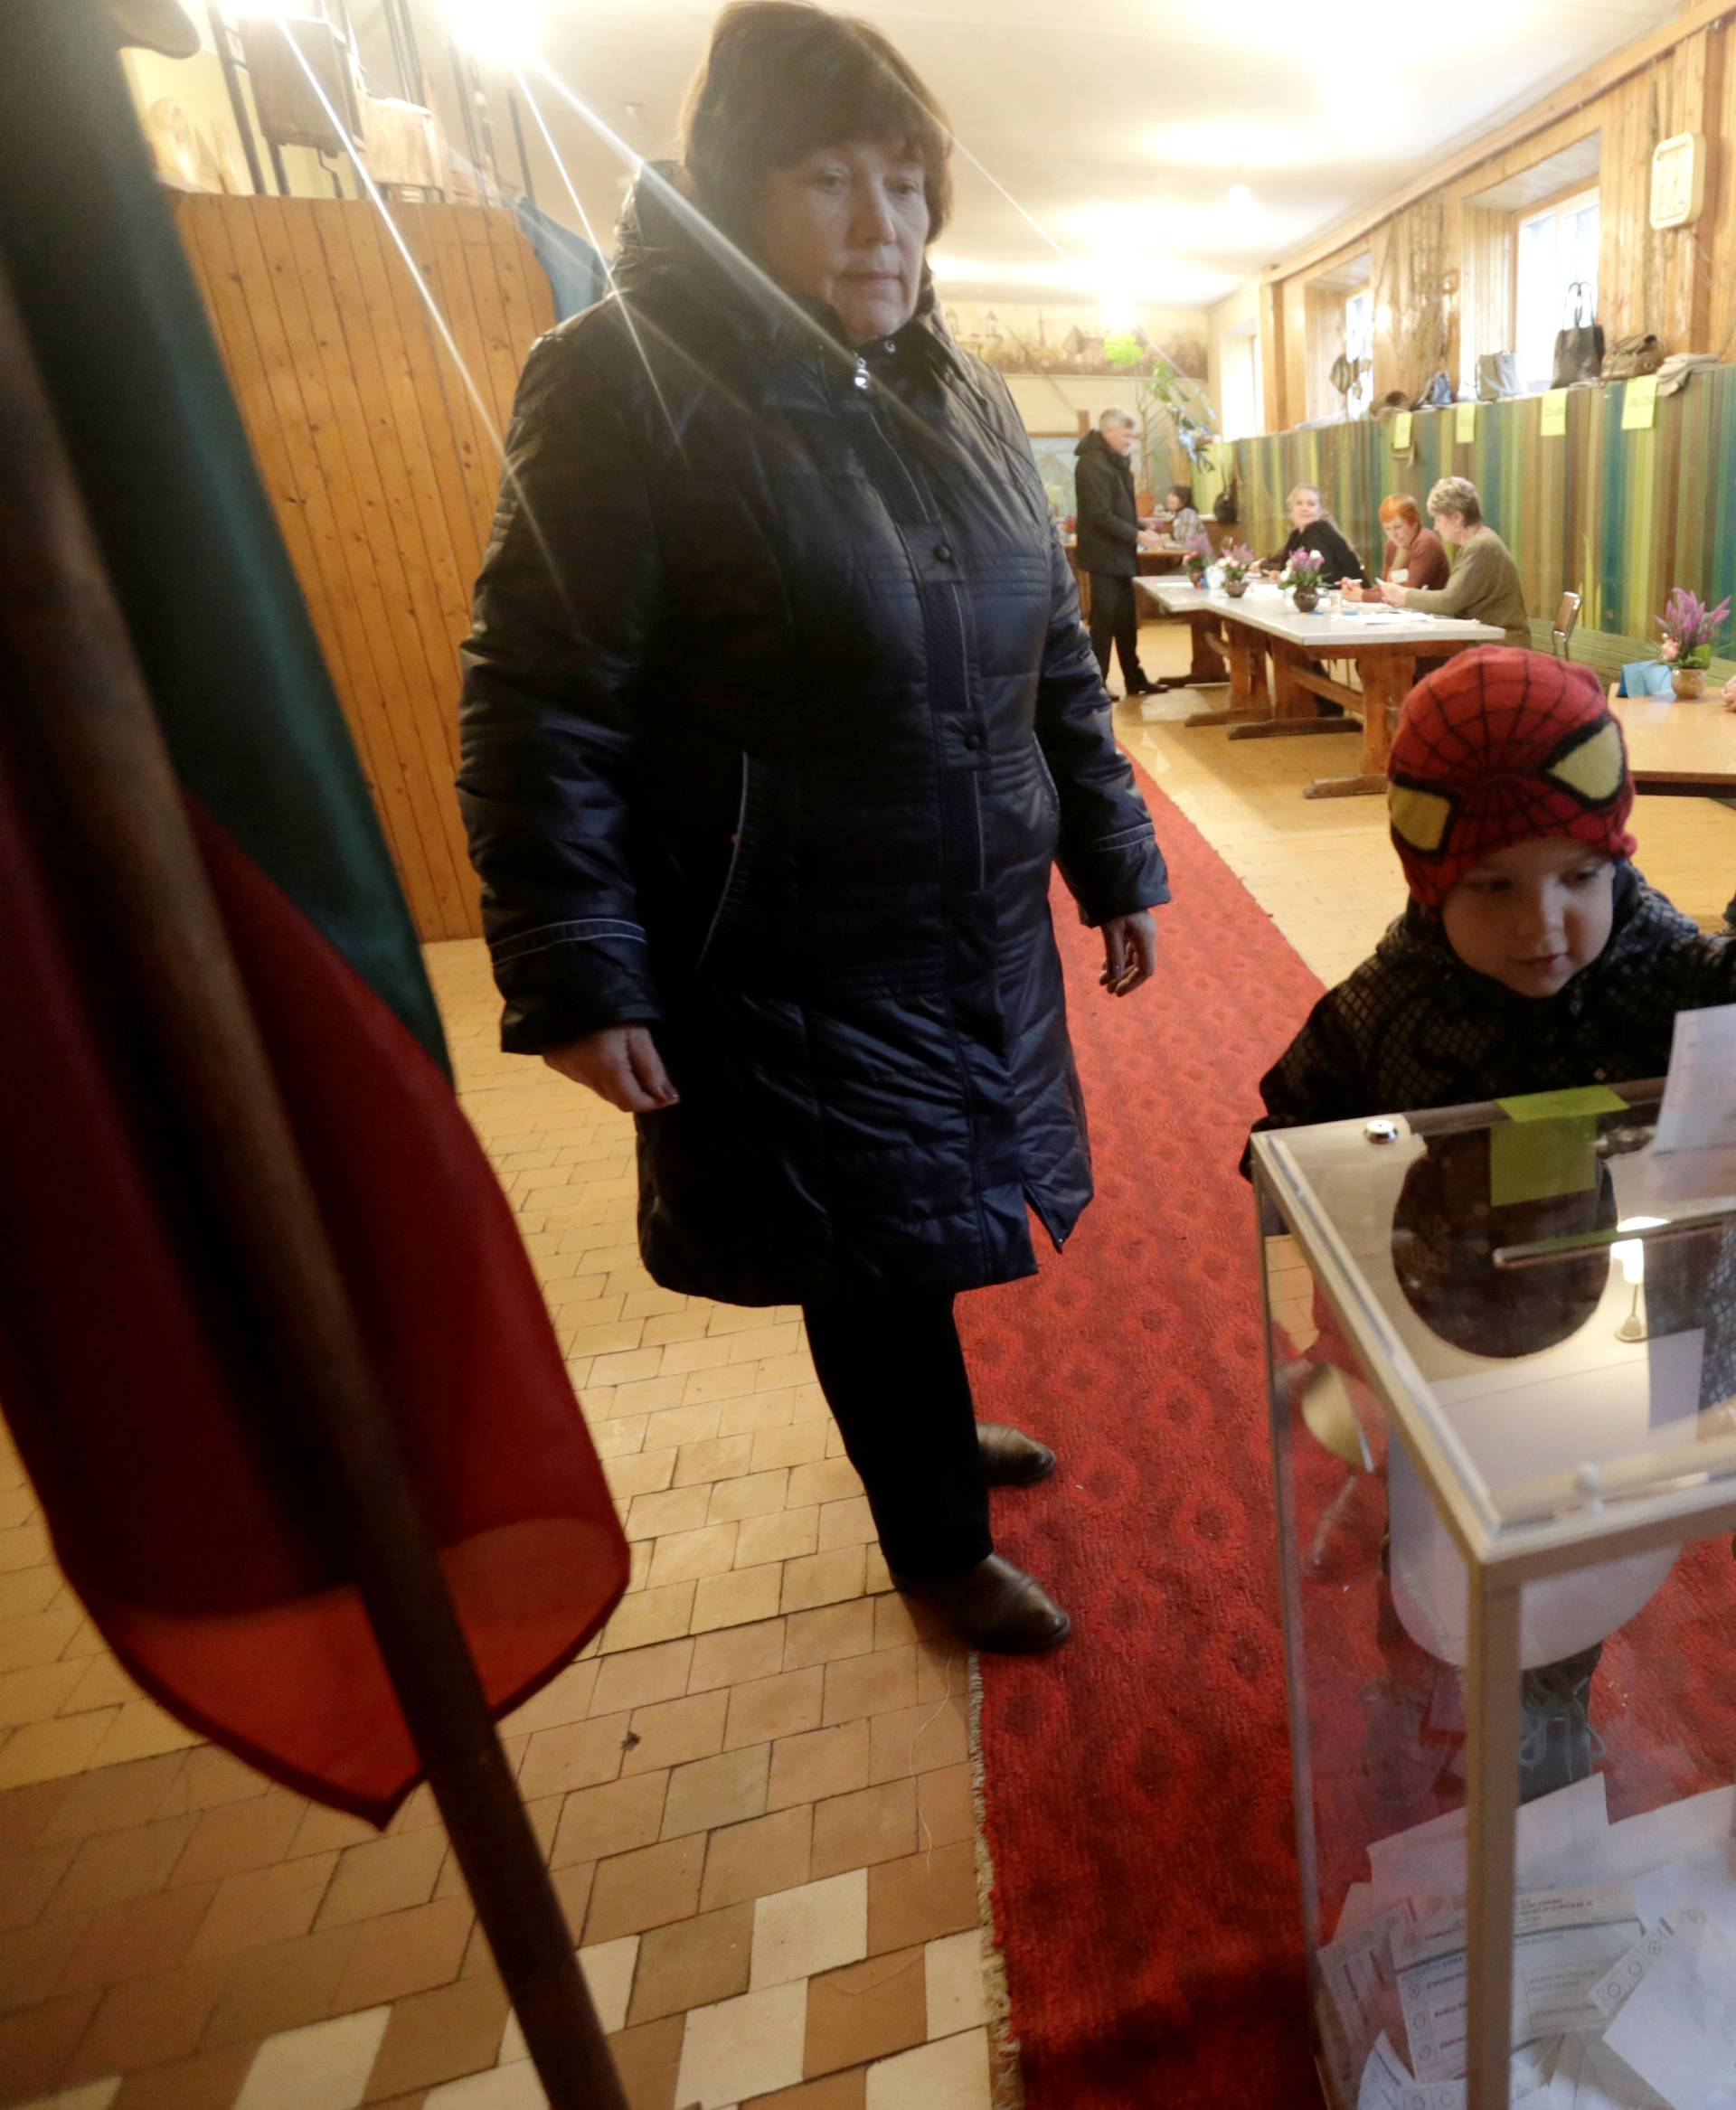 A woman looks on as a child casts her vote during a general election run-off in Birzai